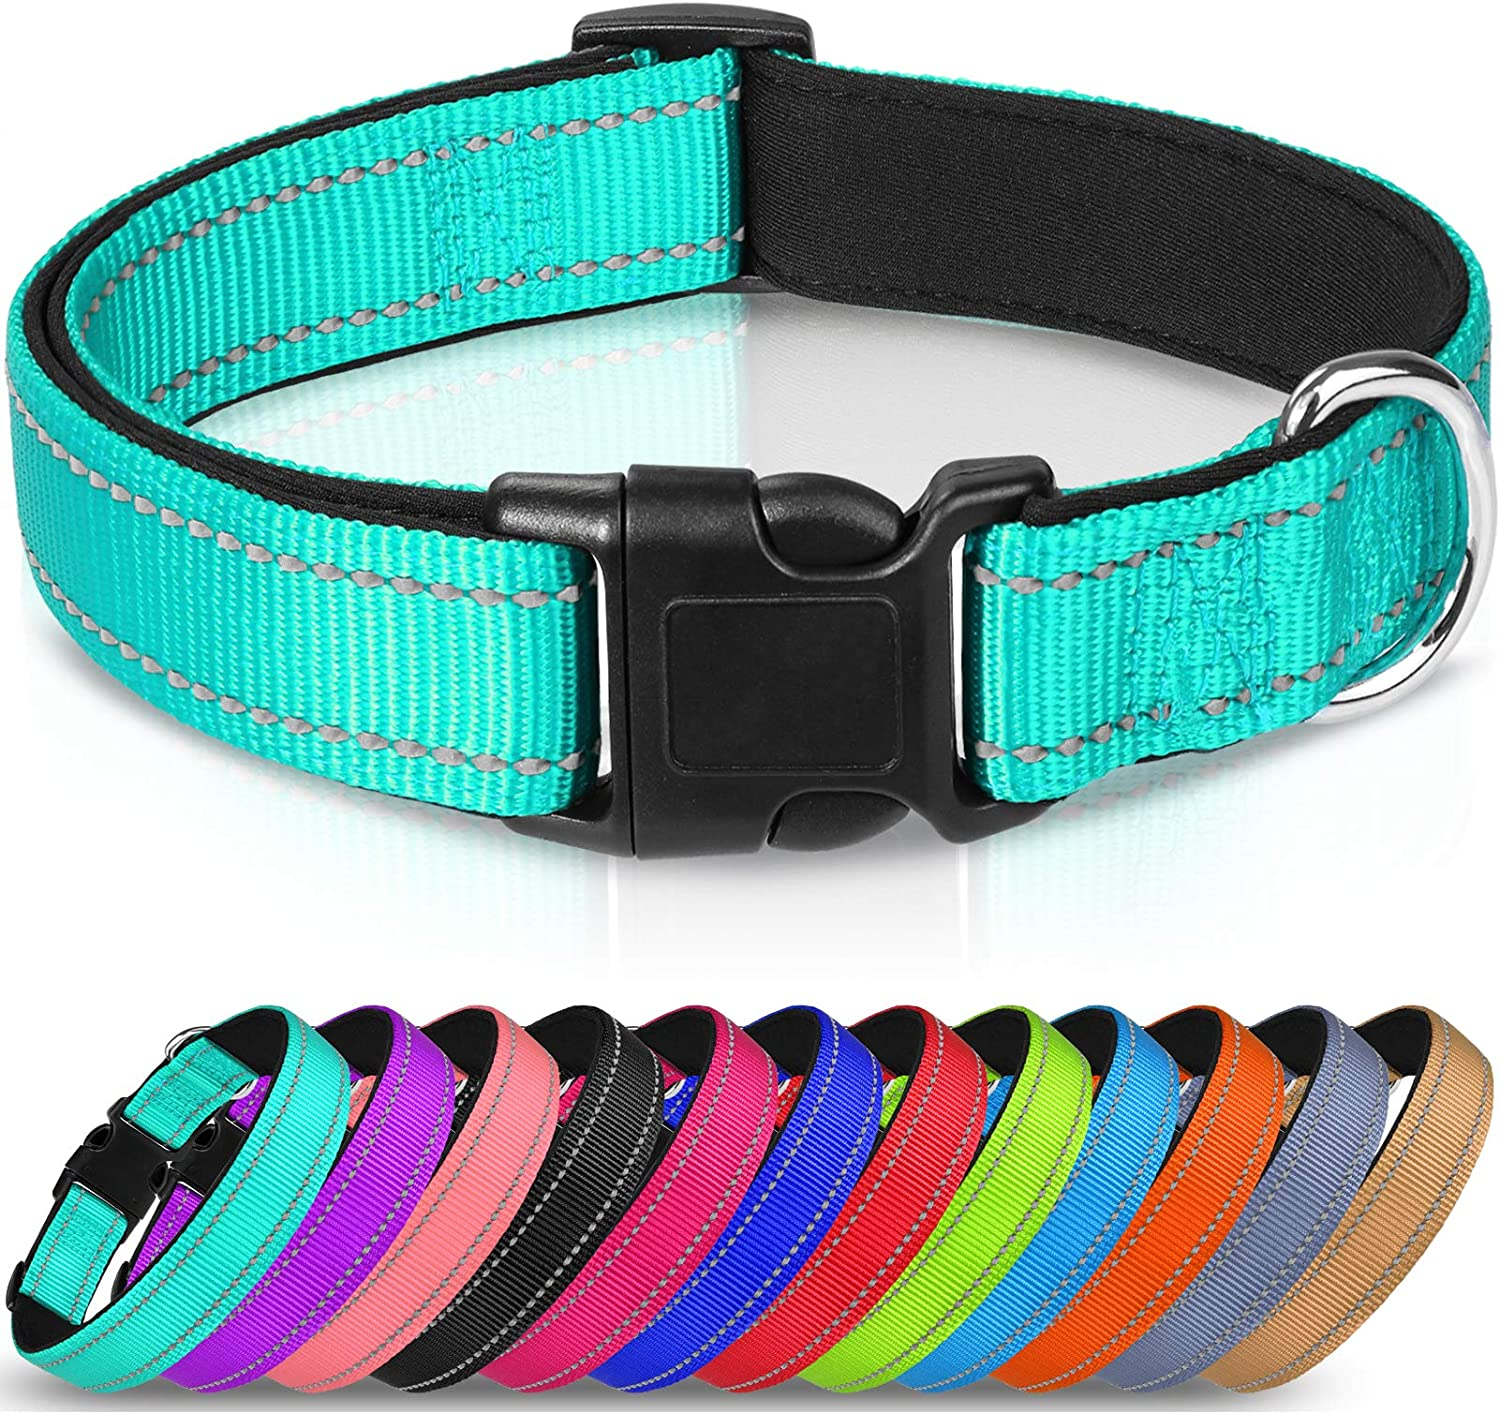 Joytale Reflective Al sold out. Dog 2021 spring and summer new Collar 12 Padded Colors Bre Soft Neoprene